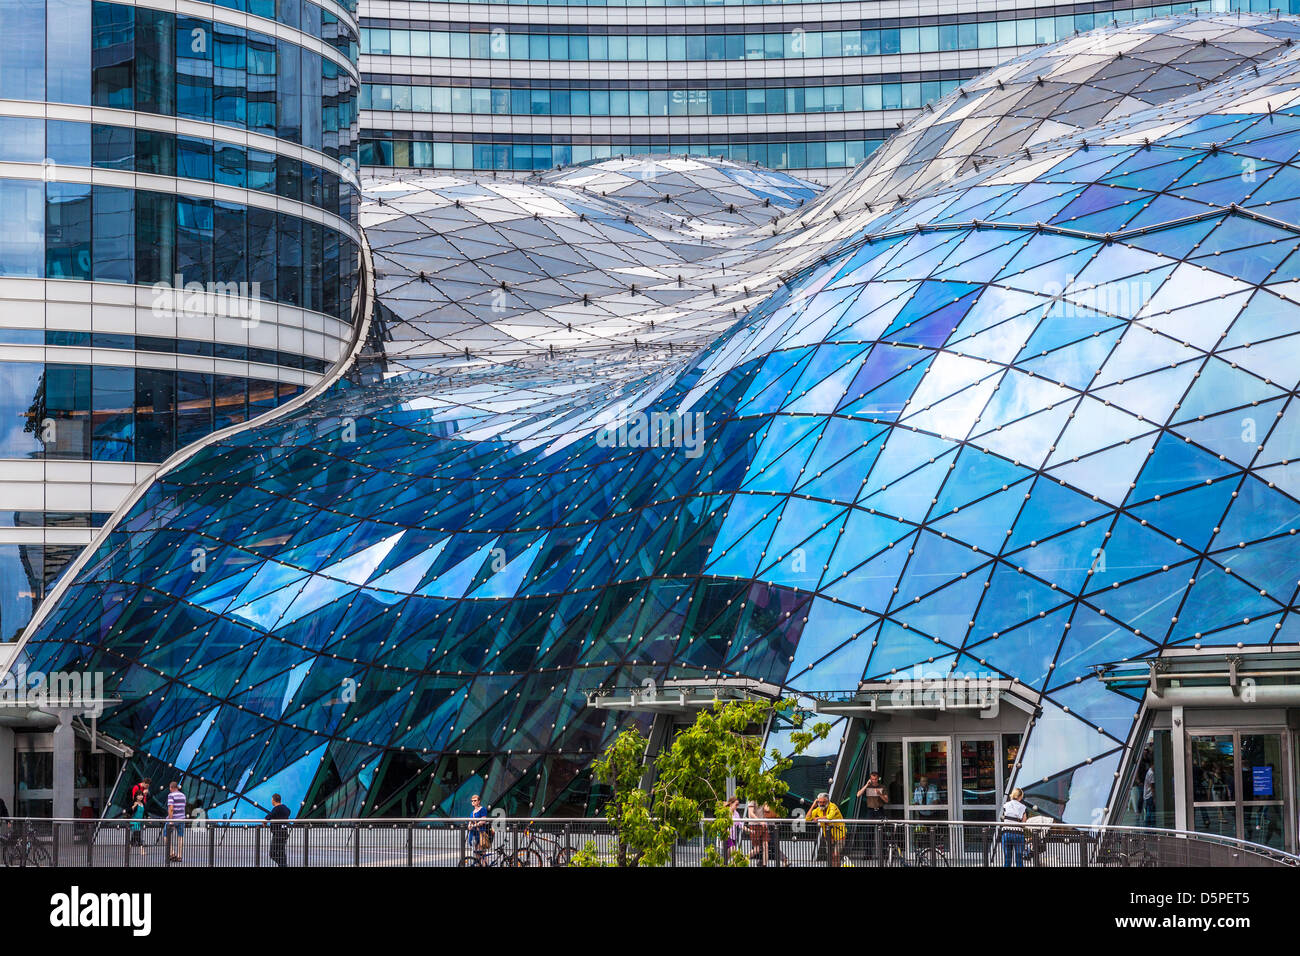 Stock Photo   The Futuristic Glass Roof Of The Złote Tarasy (Golden  Terraces) Shopping Mall In Central Warsaw, Poland